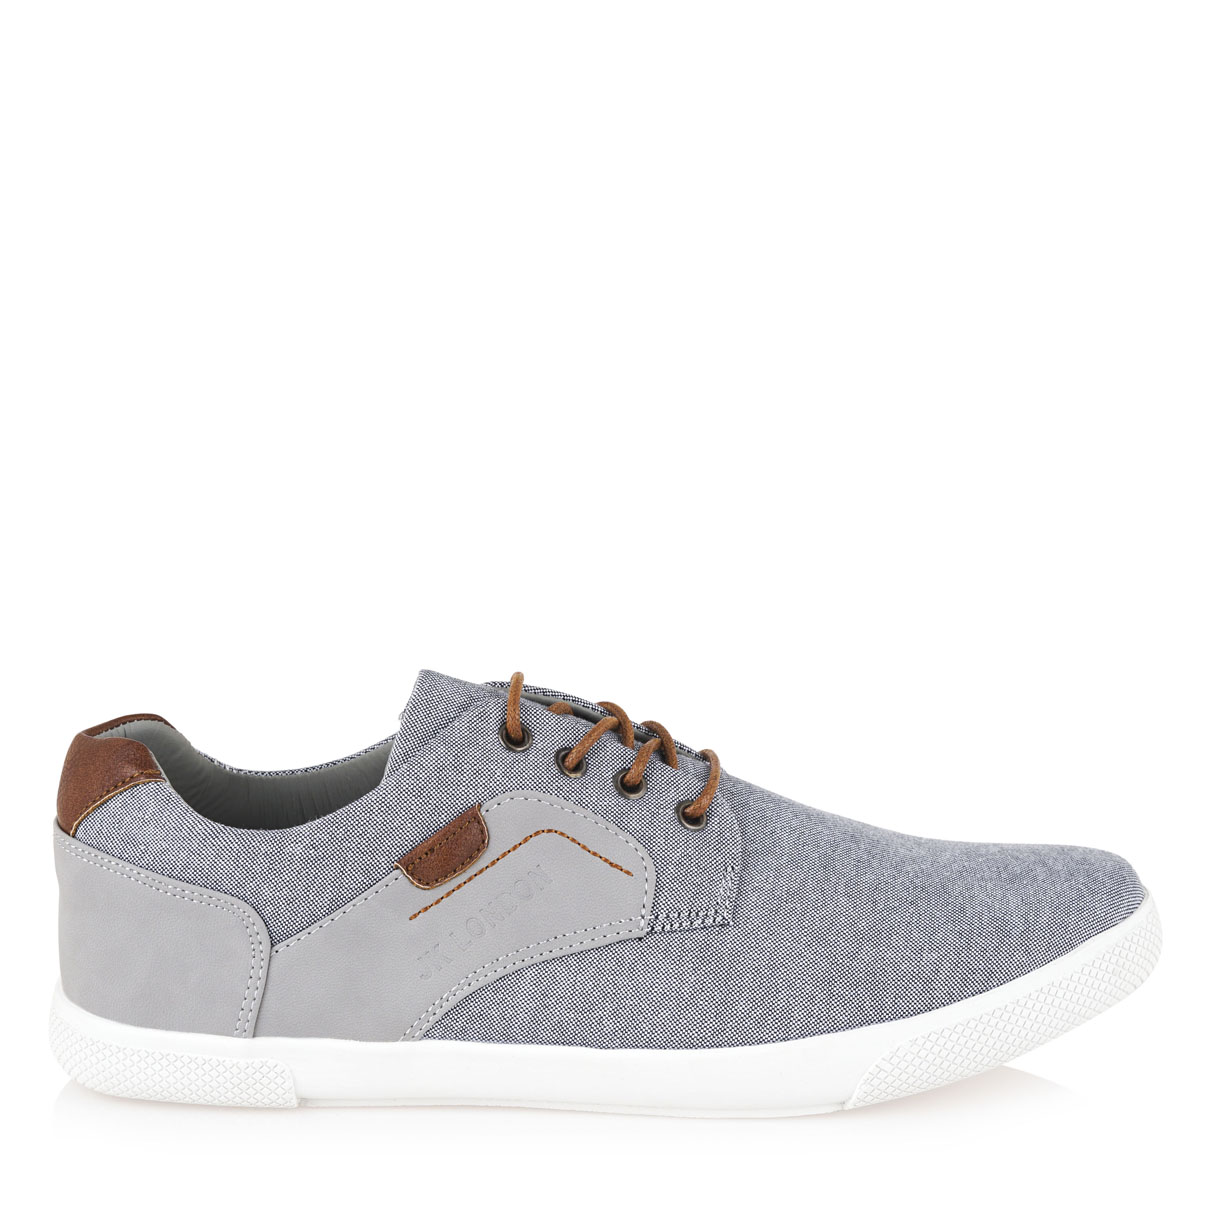 LACE-UP SHOES σχέδιο: I57000611 outlet   ανδρικα   lace up shoes